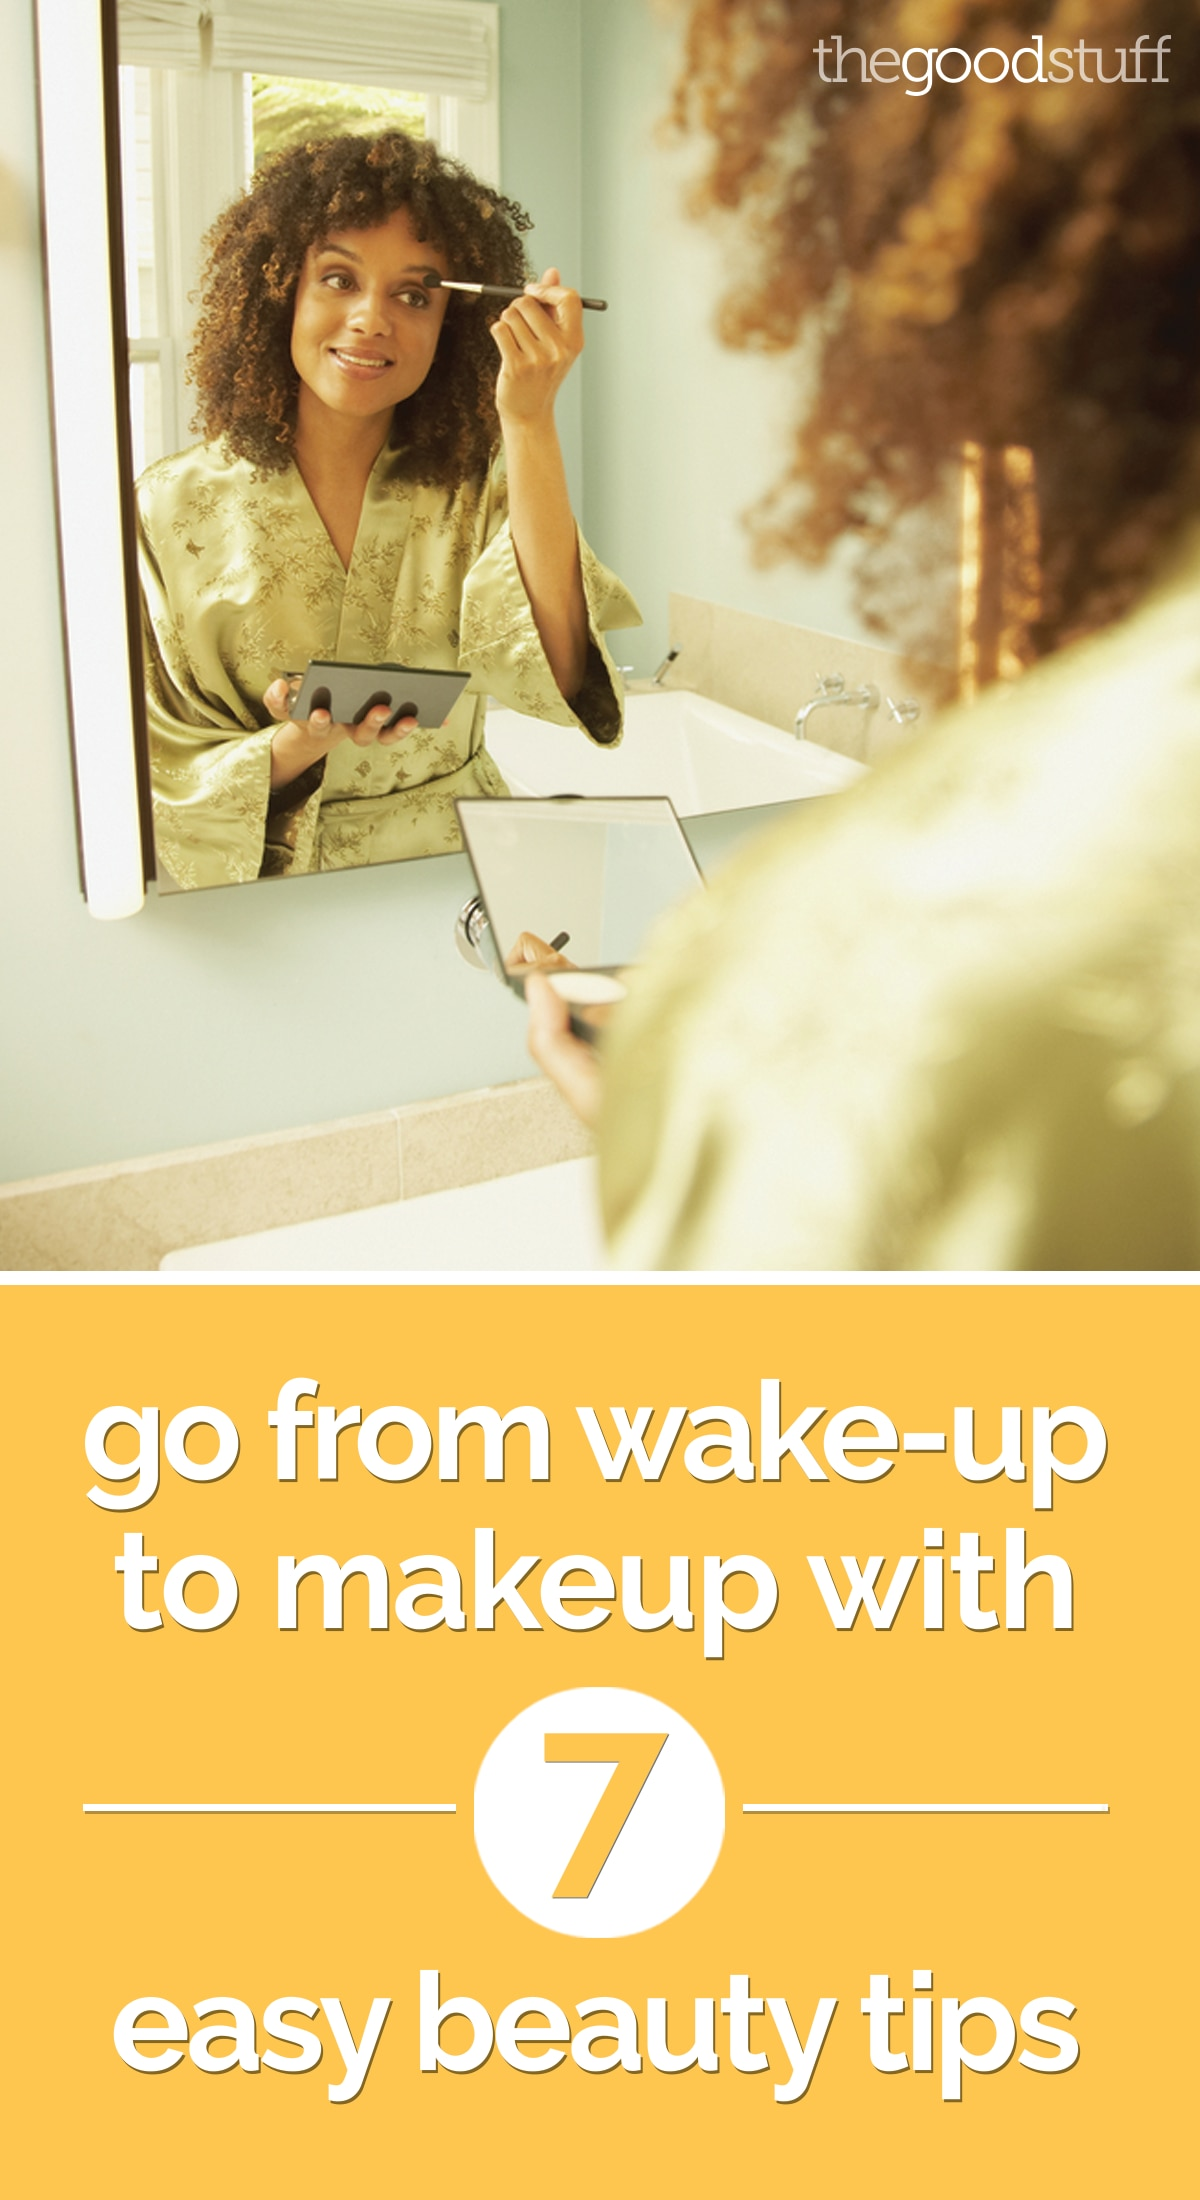 Go From Wake-Up to Makeup with 7 Easy Beauty Tips | thegoodstuff